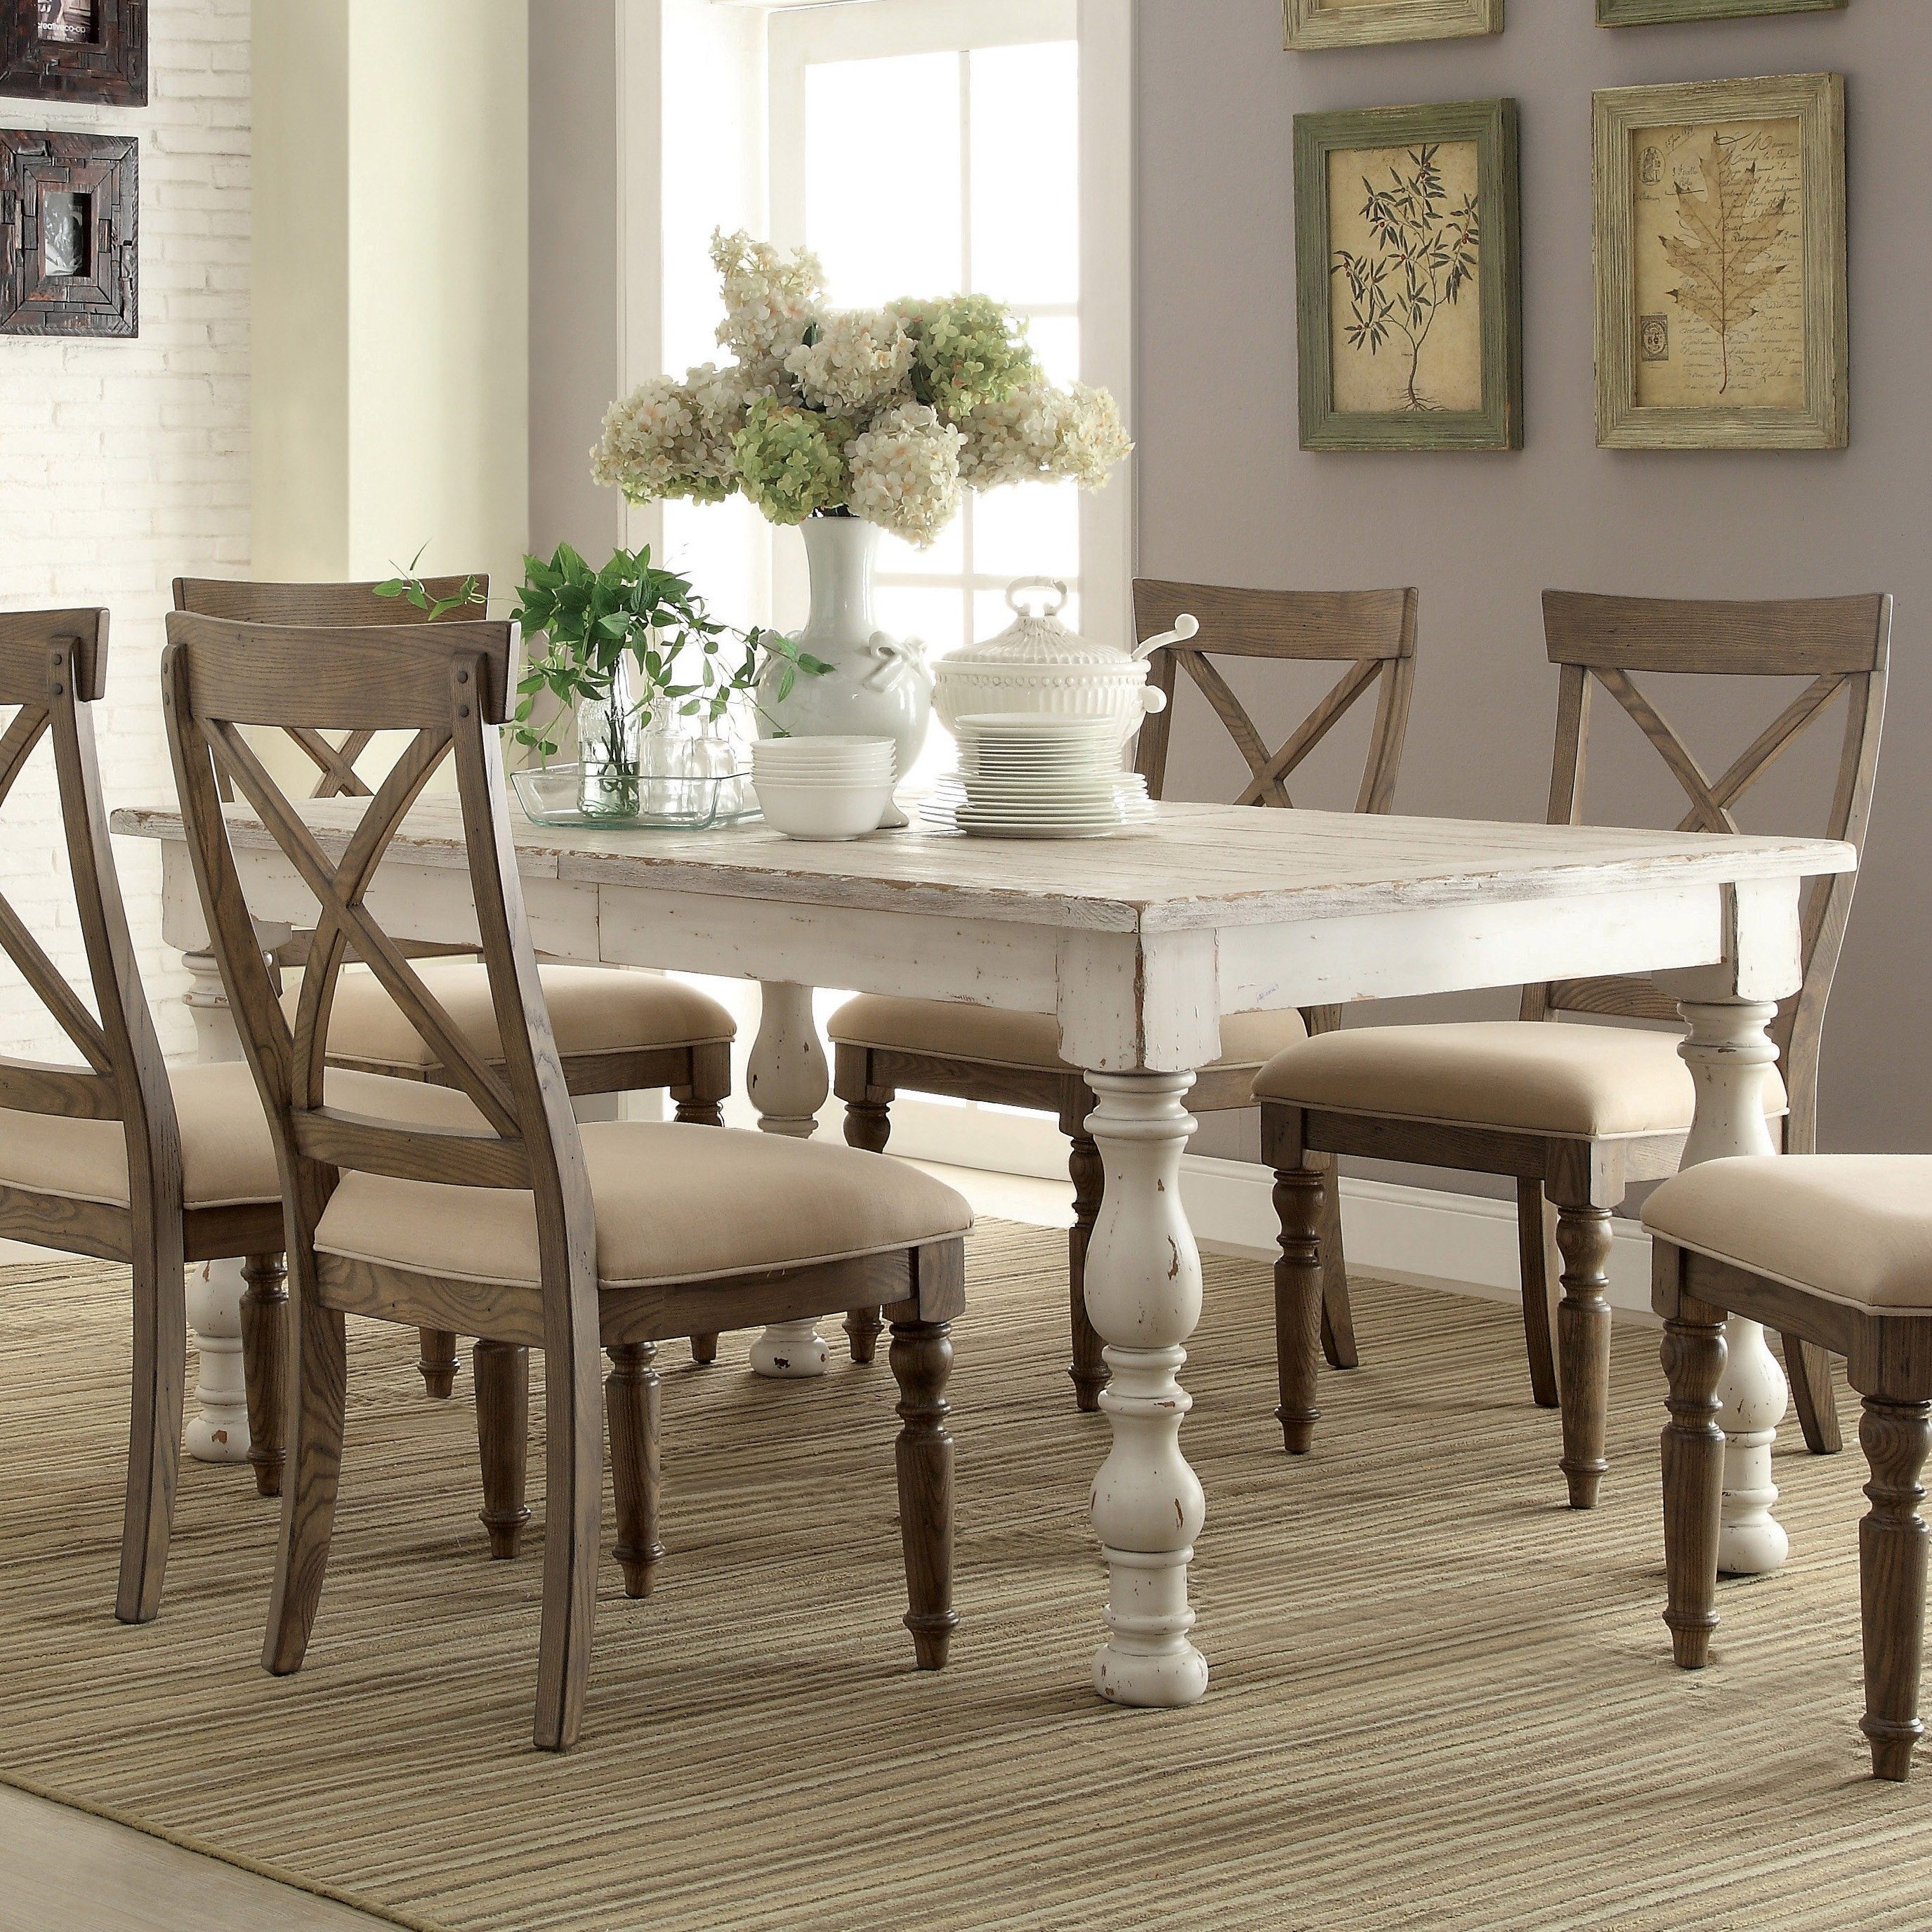 Room And Board Dining Chairs: Aberdeen Wood Rectangular Dining Table And Chairs In